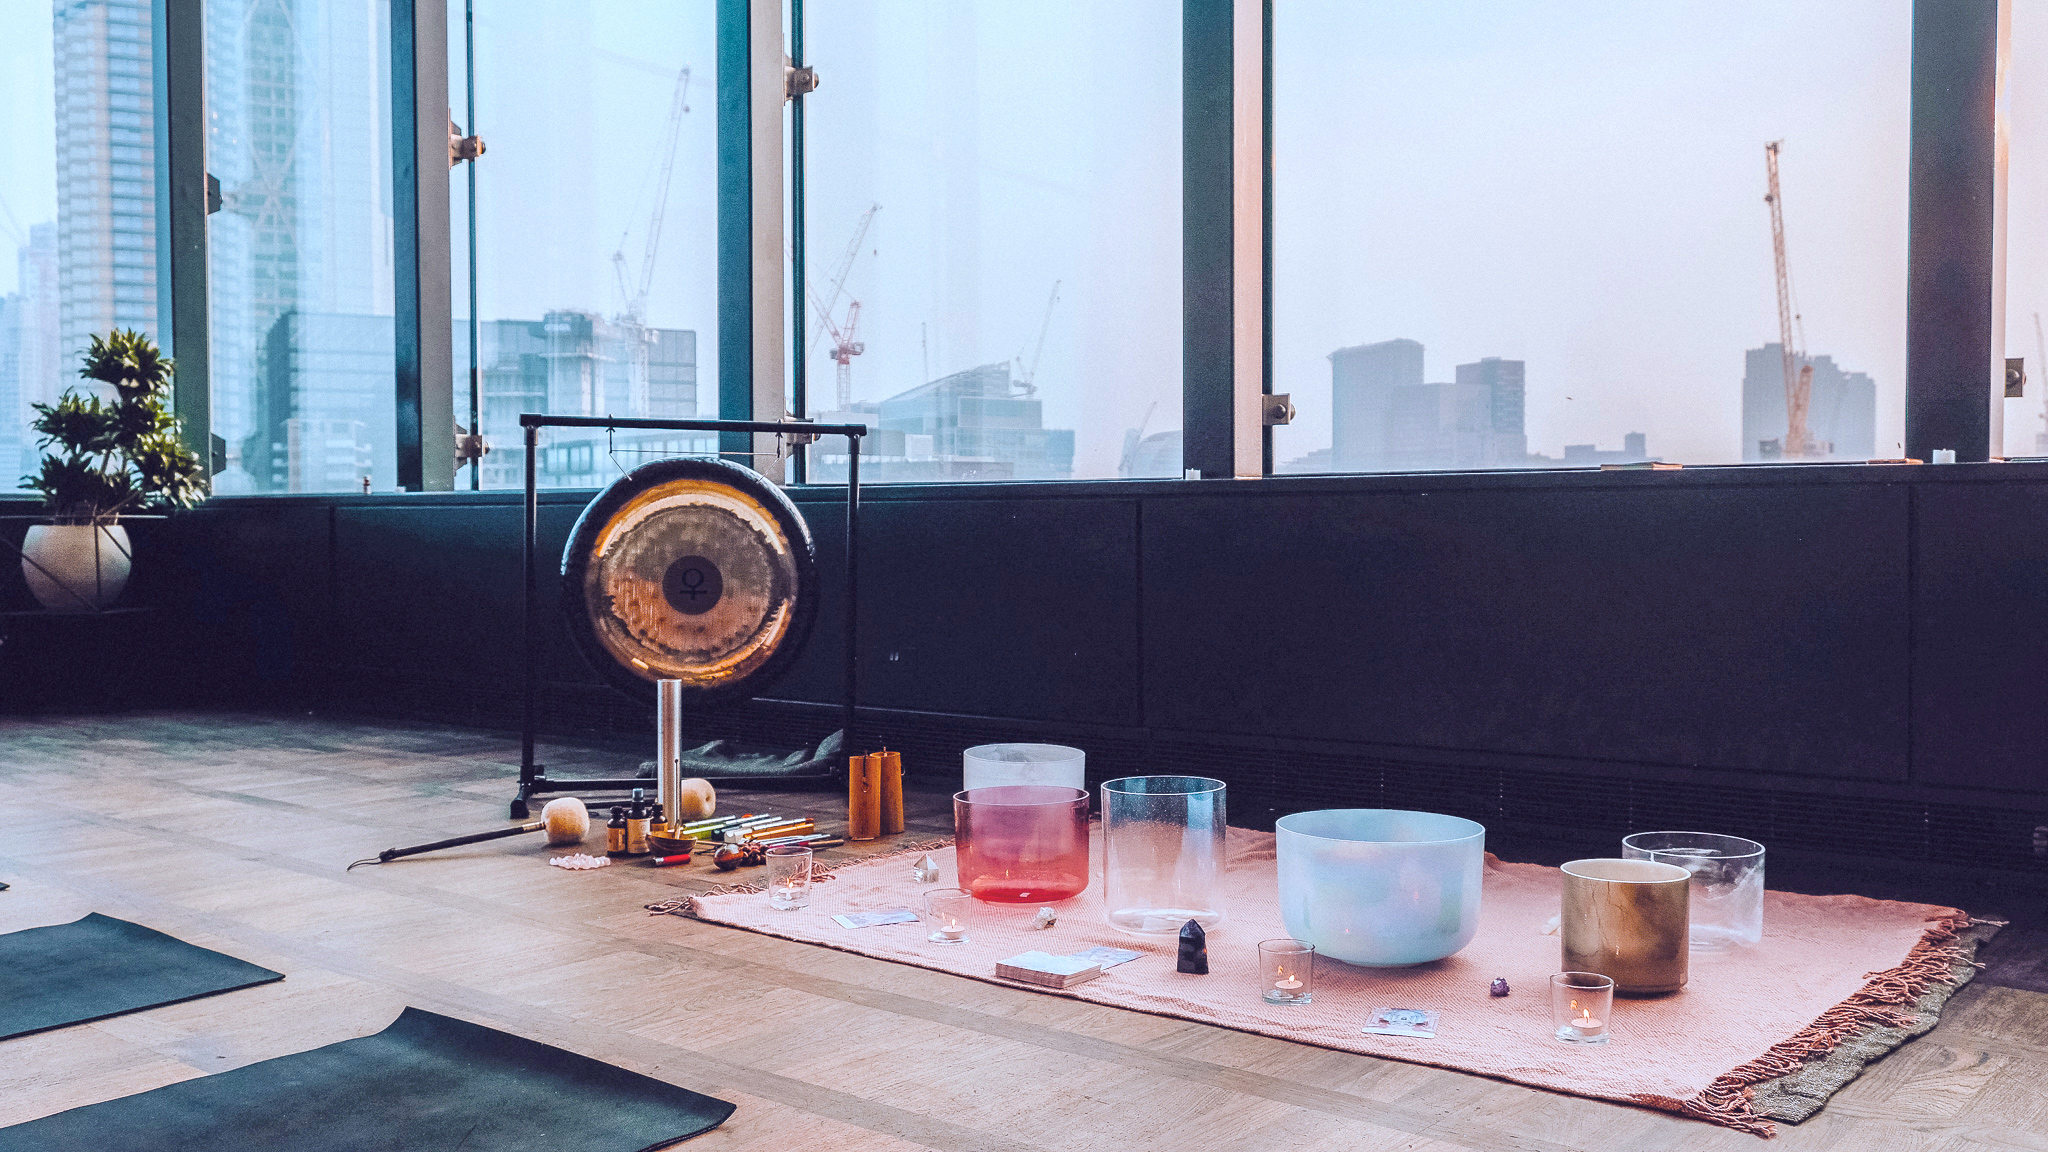 Vibrational Alchemy at Ace Hotel Shoreditch. Photo: @ste_marques from @betweenplaces